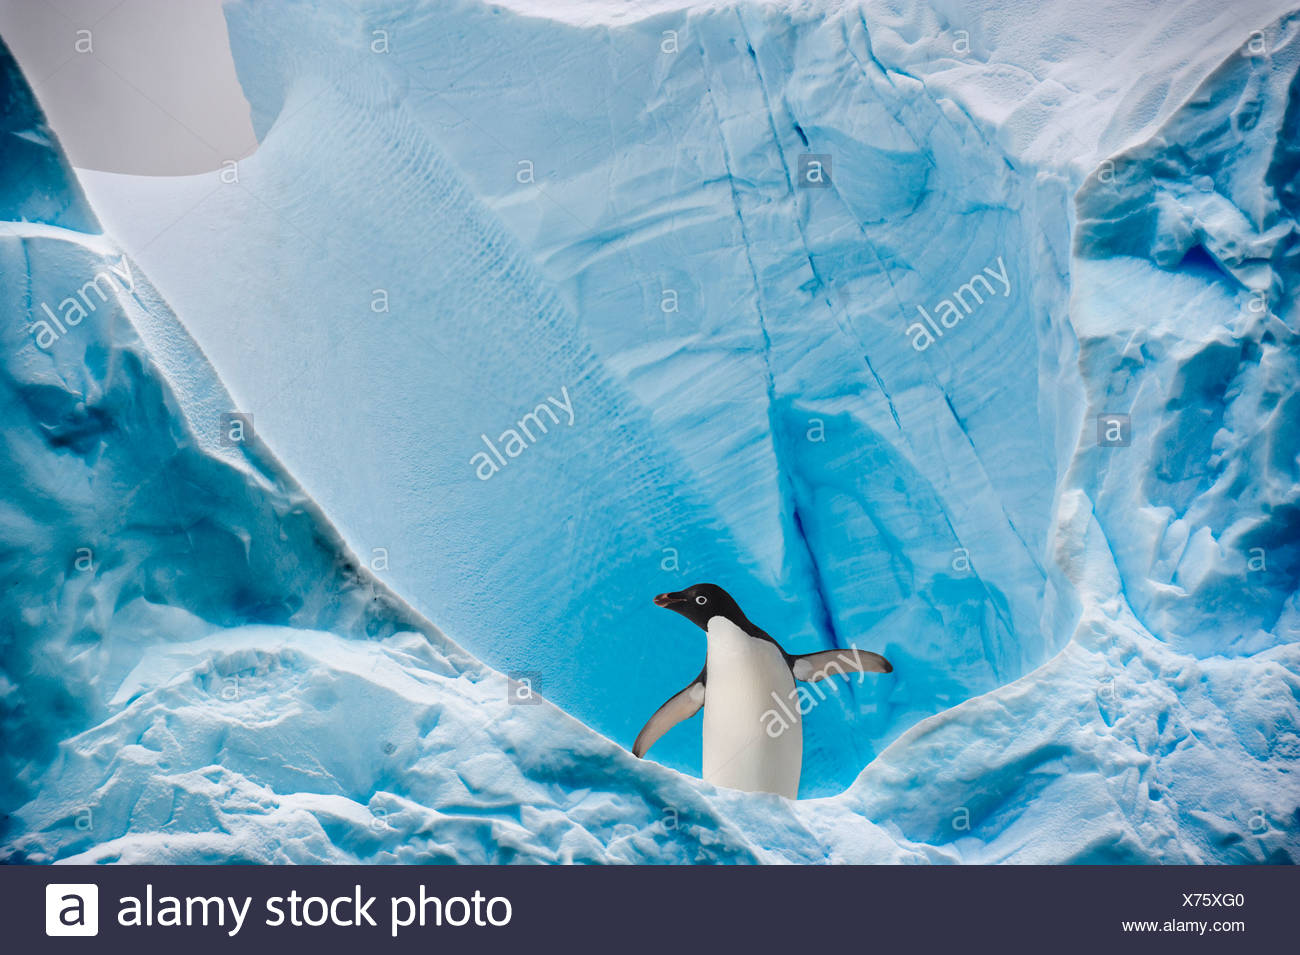 Adelie Penguin on iceberg, Graham Passage, Antarctic Peninsula, Antarctica. - Stock Image